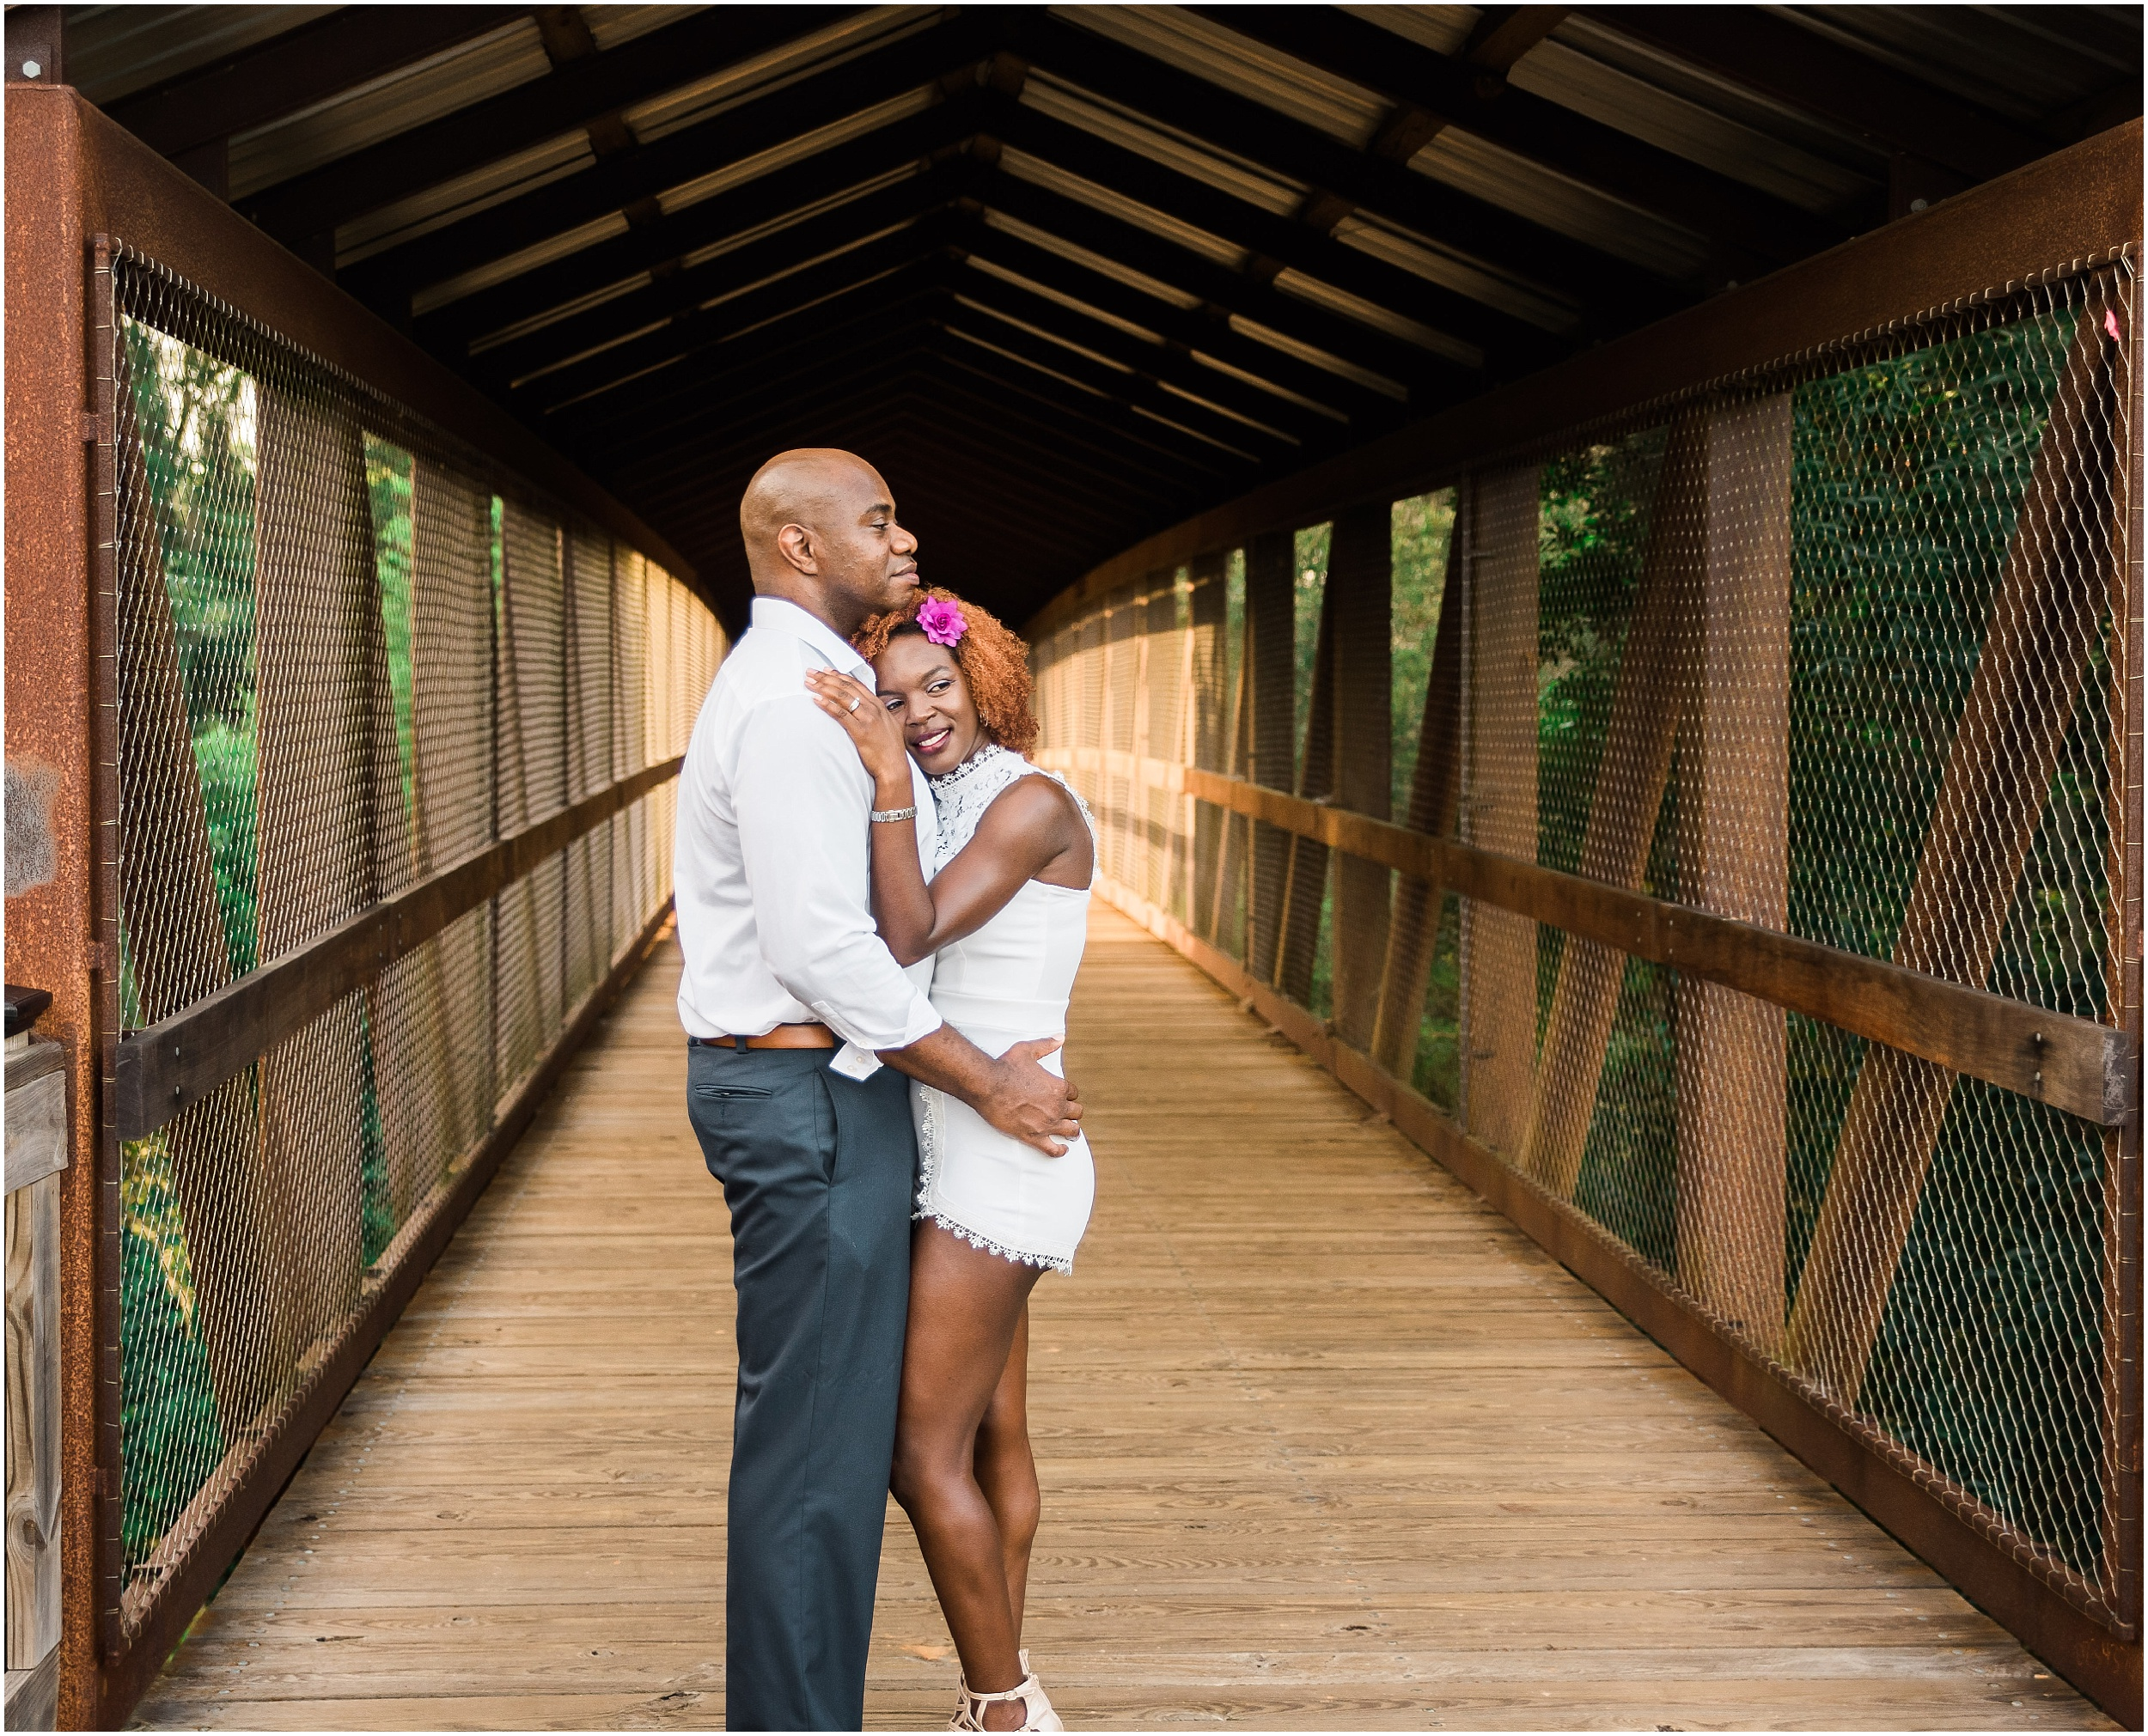 Kacy & Rolanda Vow Renewal at J.R Alford Greenway, Tallahassee FL_0011.jpg